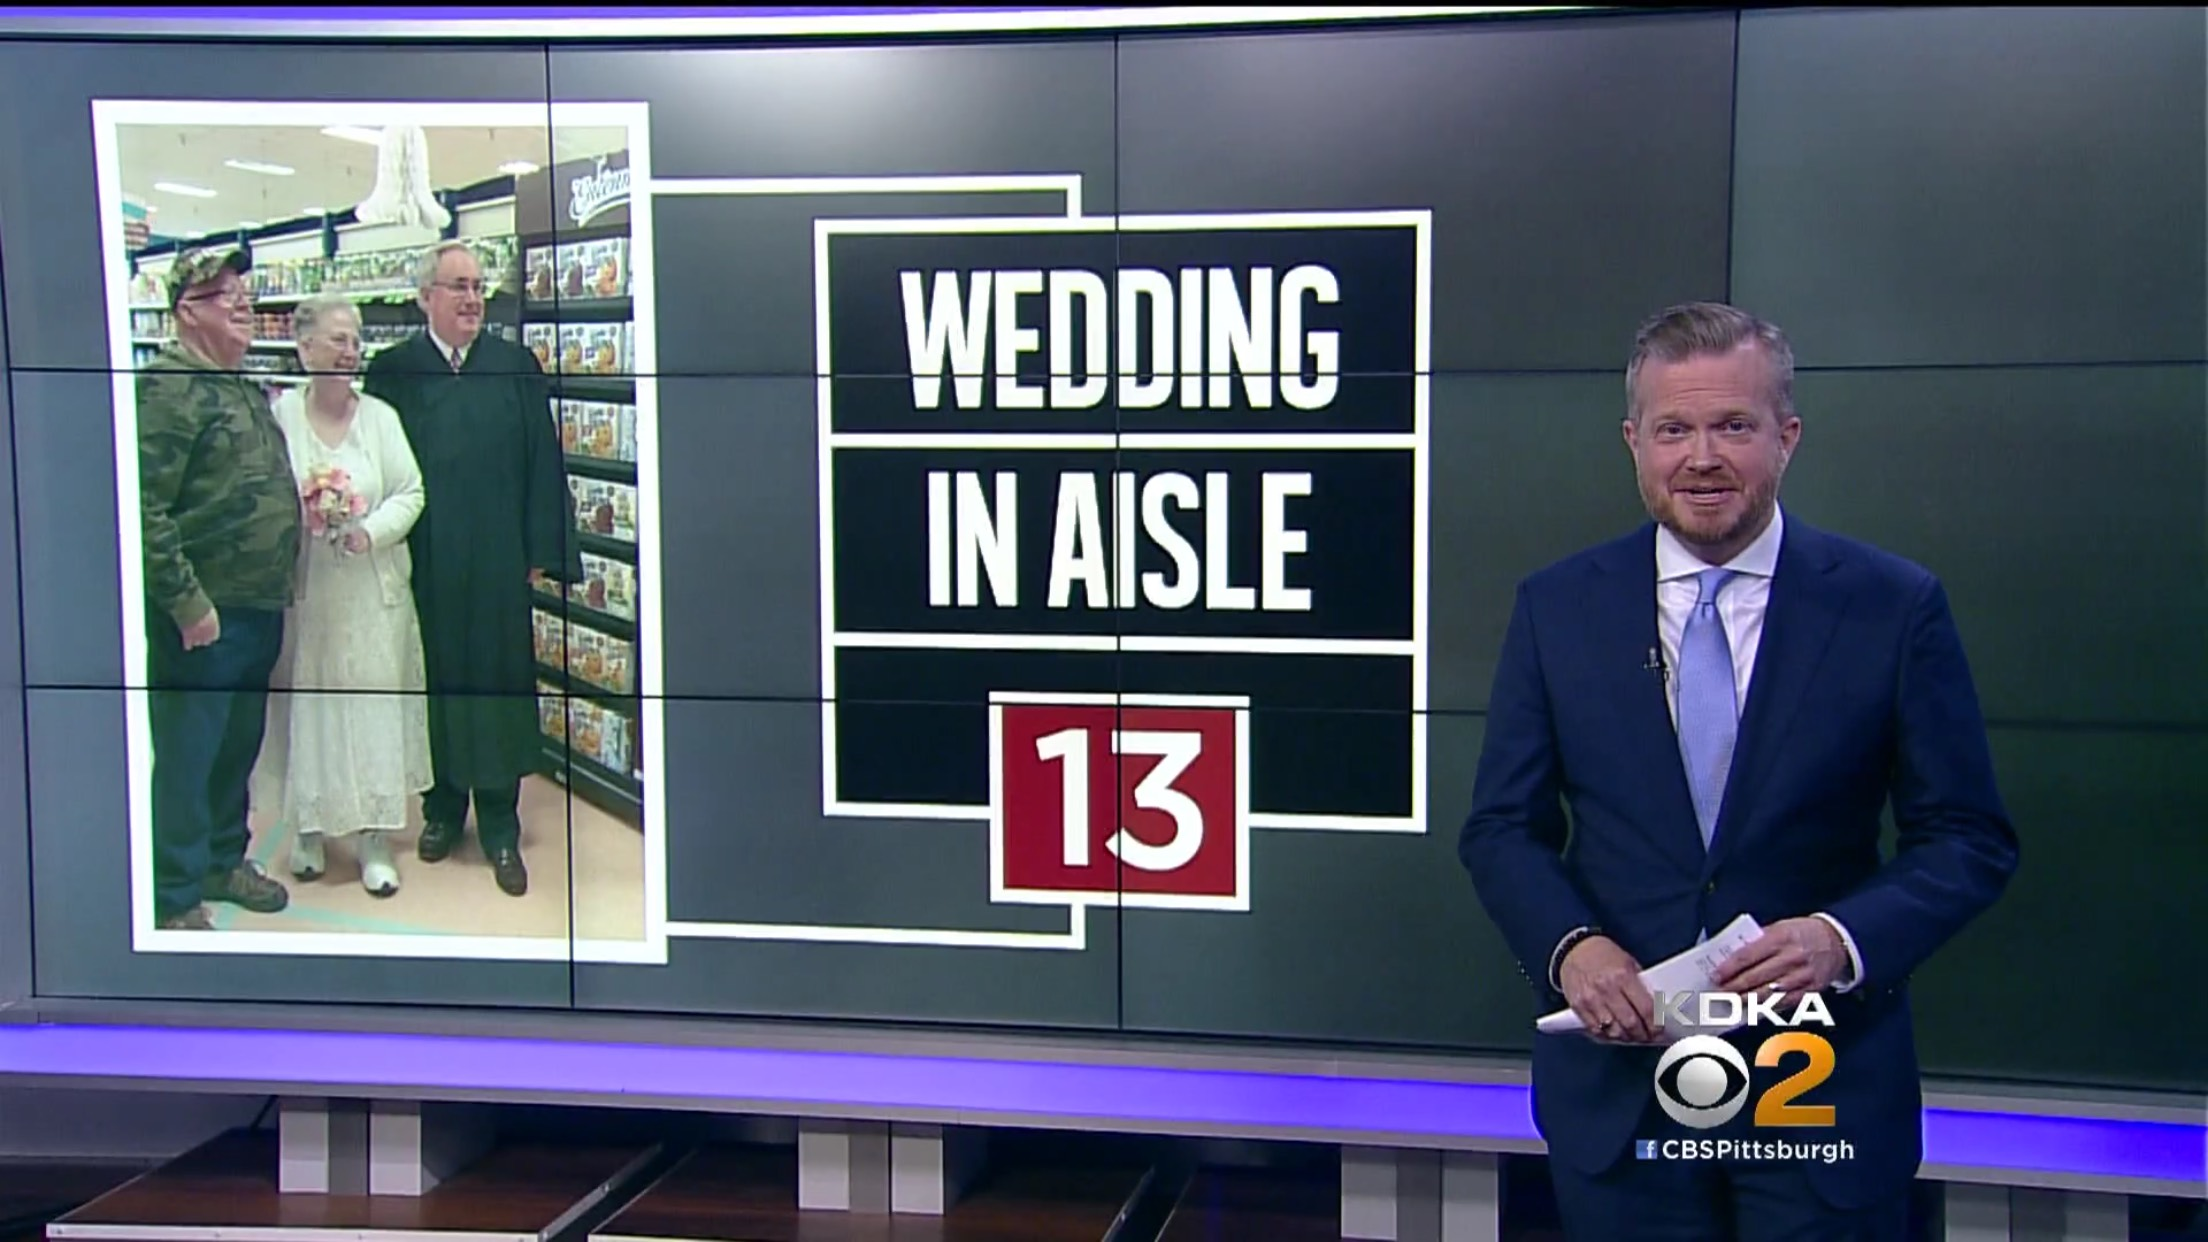 Wedding in Aisle 13